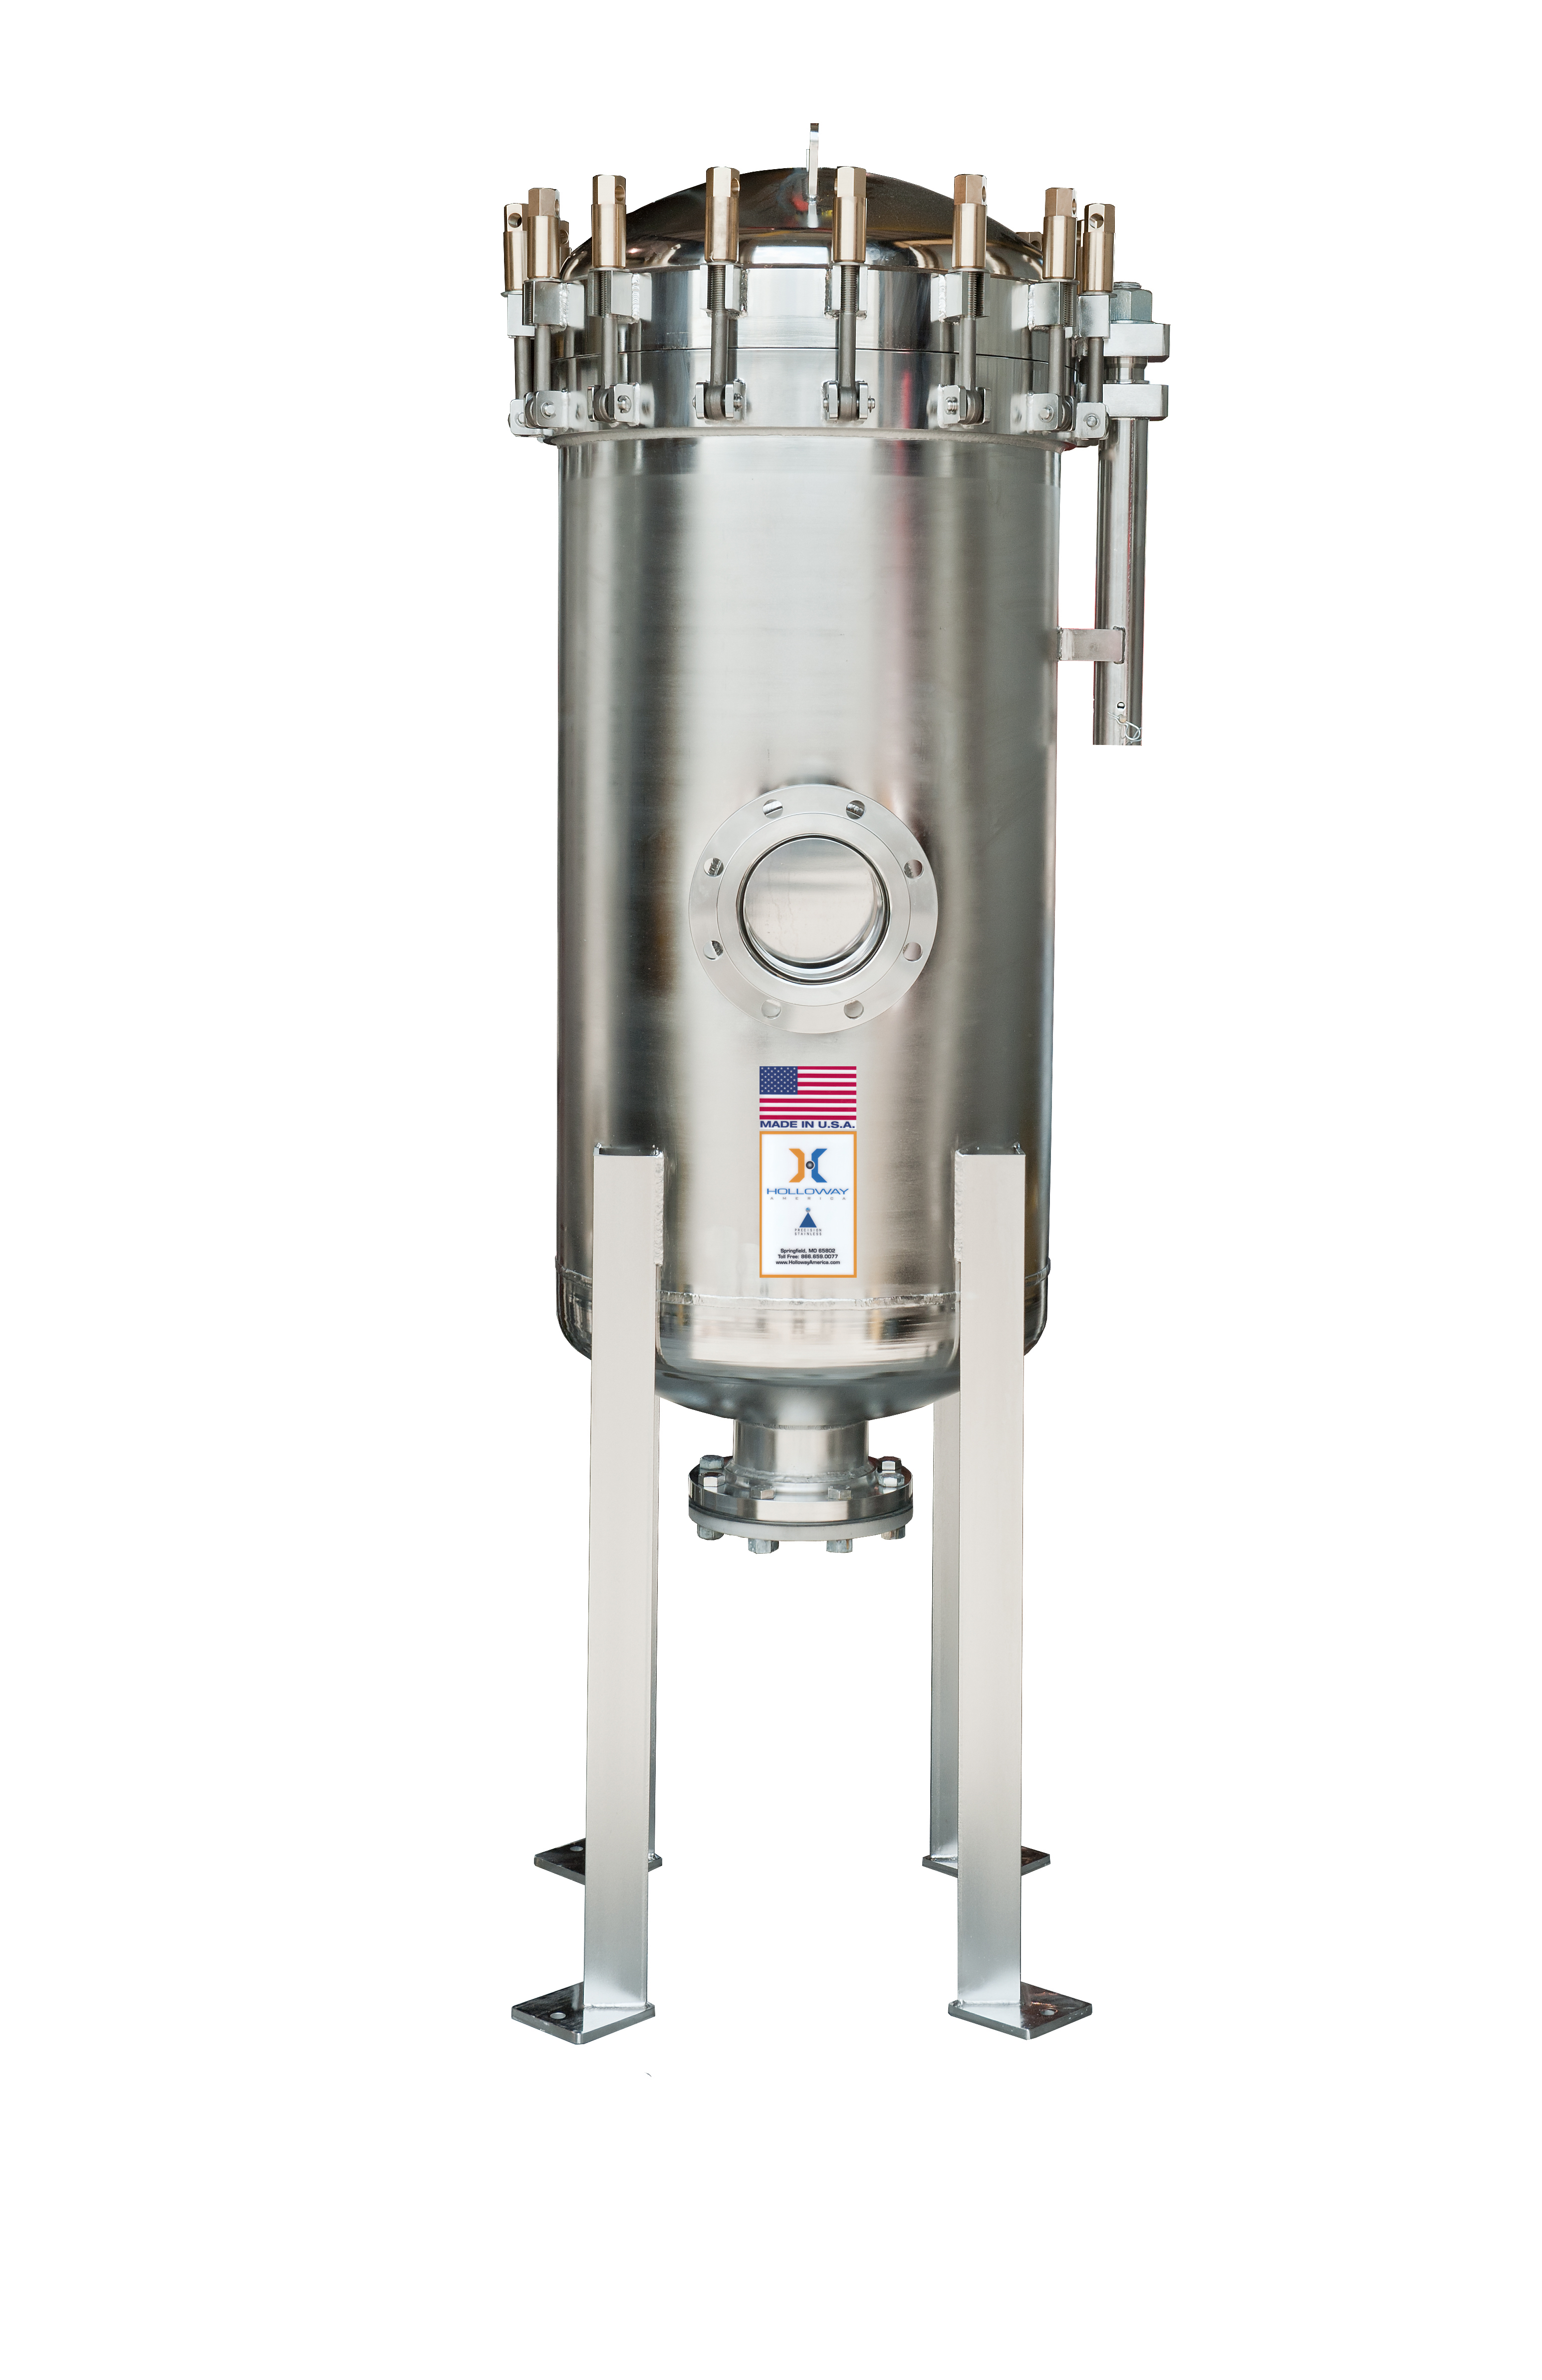 This is a fine ASME pressure vessel by HOLLOWAY.